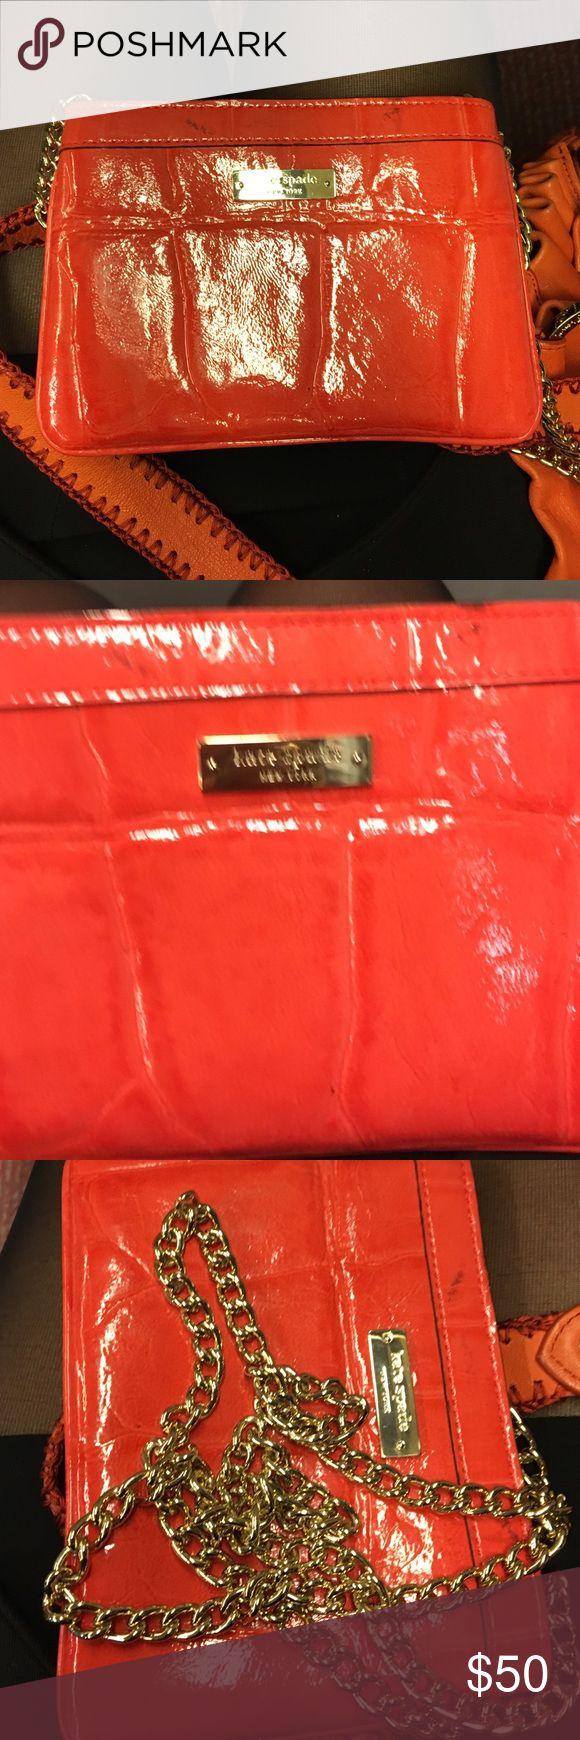 Red Kate spade mini crossover I love this little cutie but I travel with many things all the time. Great for a night out. Clean interior, marks on the outside 6 1/2 inches 5inches long kate spade Bags Clutches & Wristlets